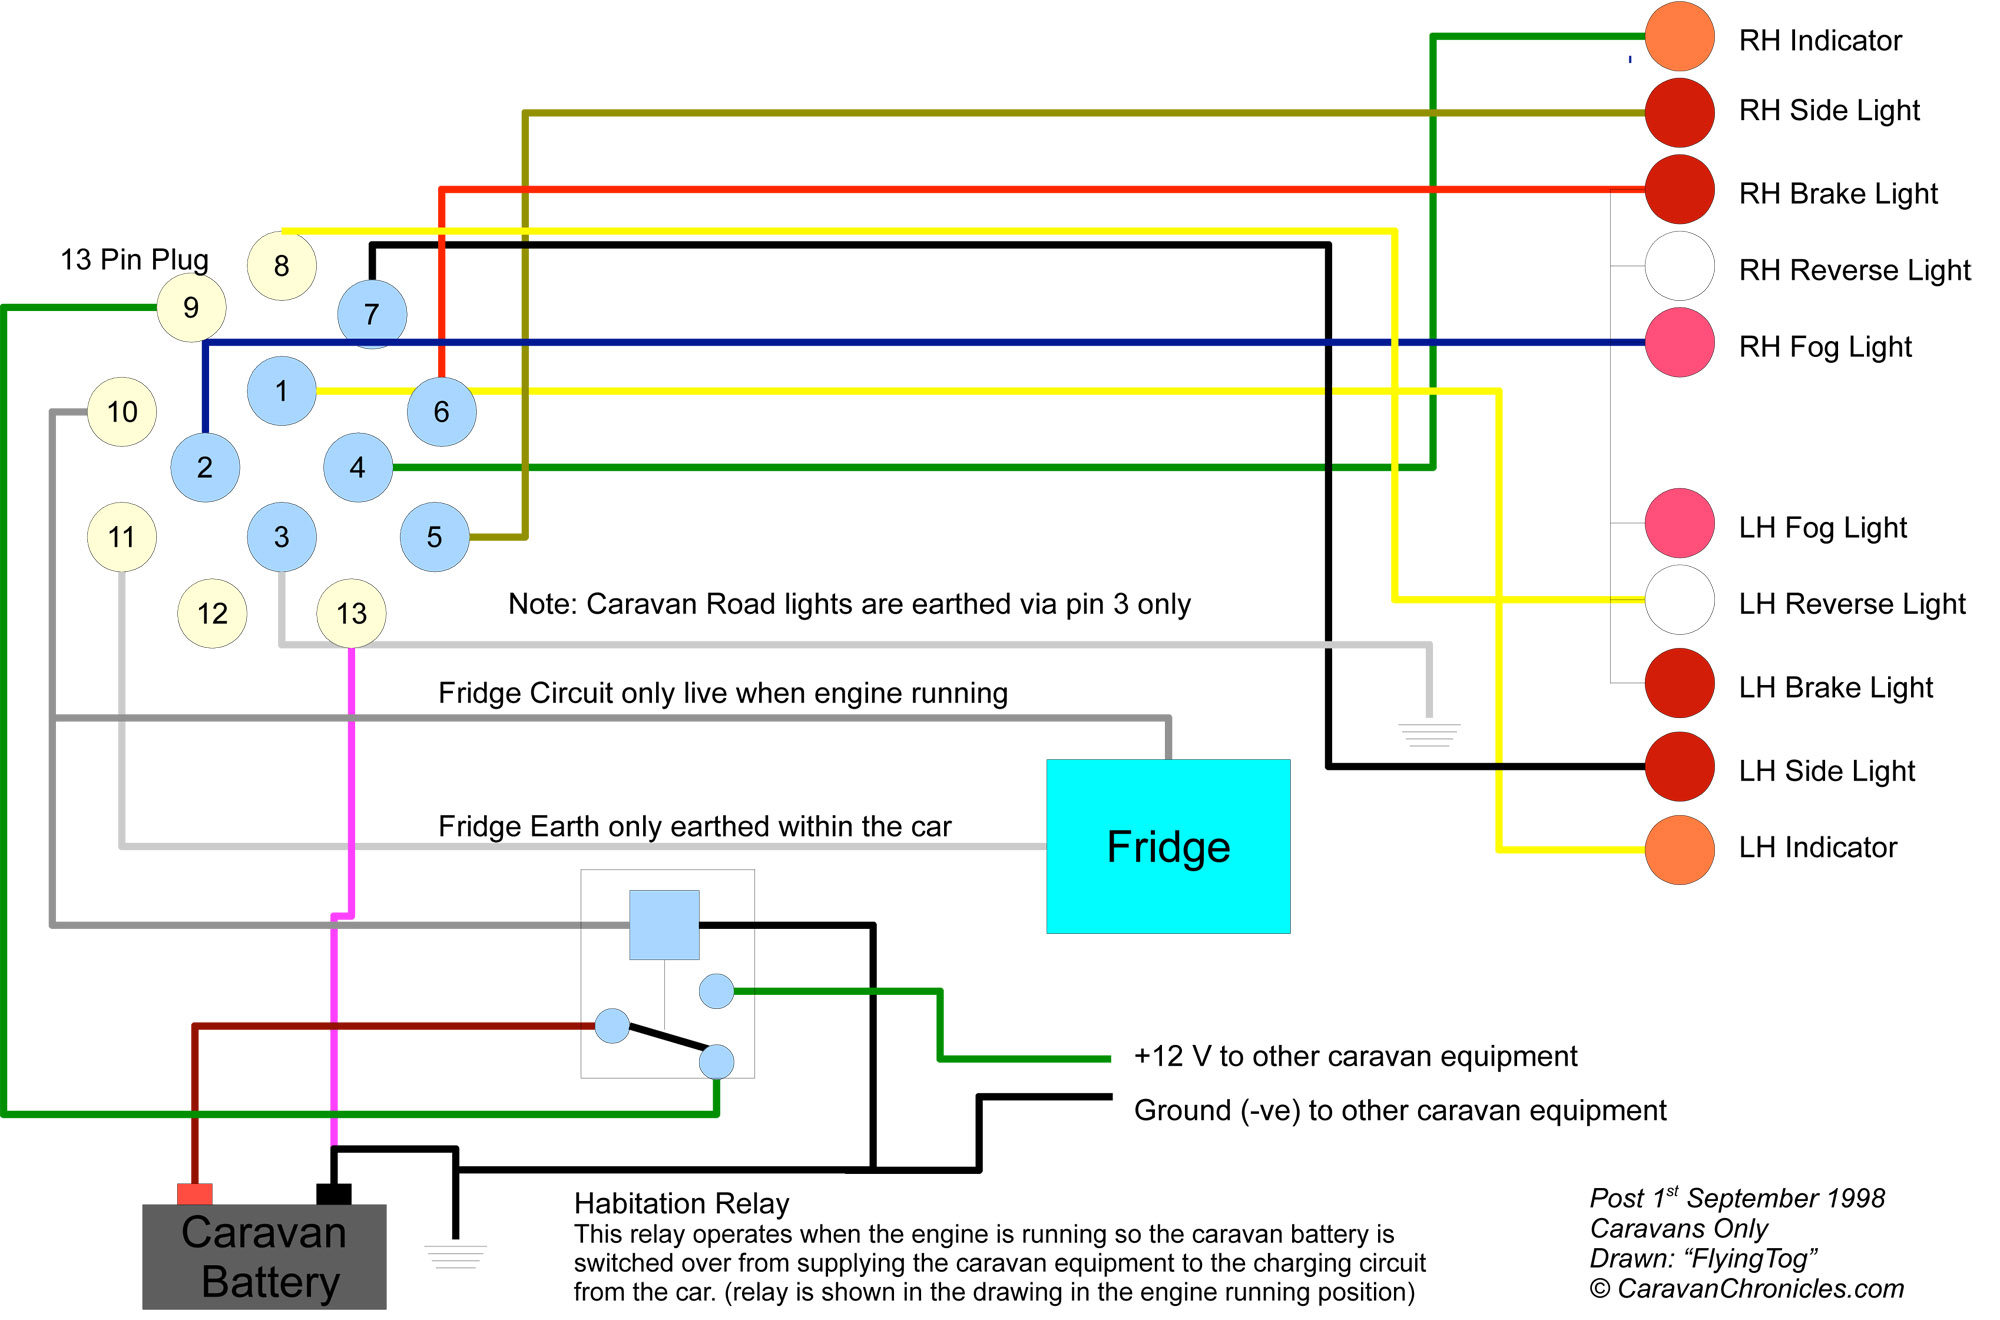 caravan wiring 13 pin understanding caravan and tow car electrics caravan chronicles 7 wire diagram at bakdesigns.co